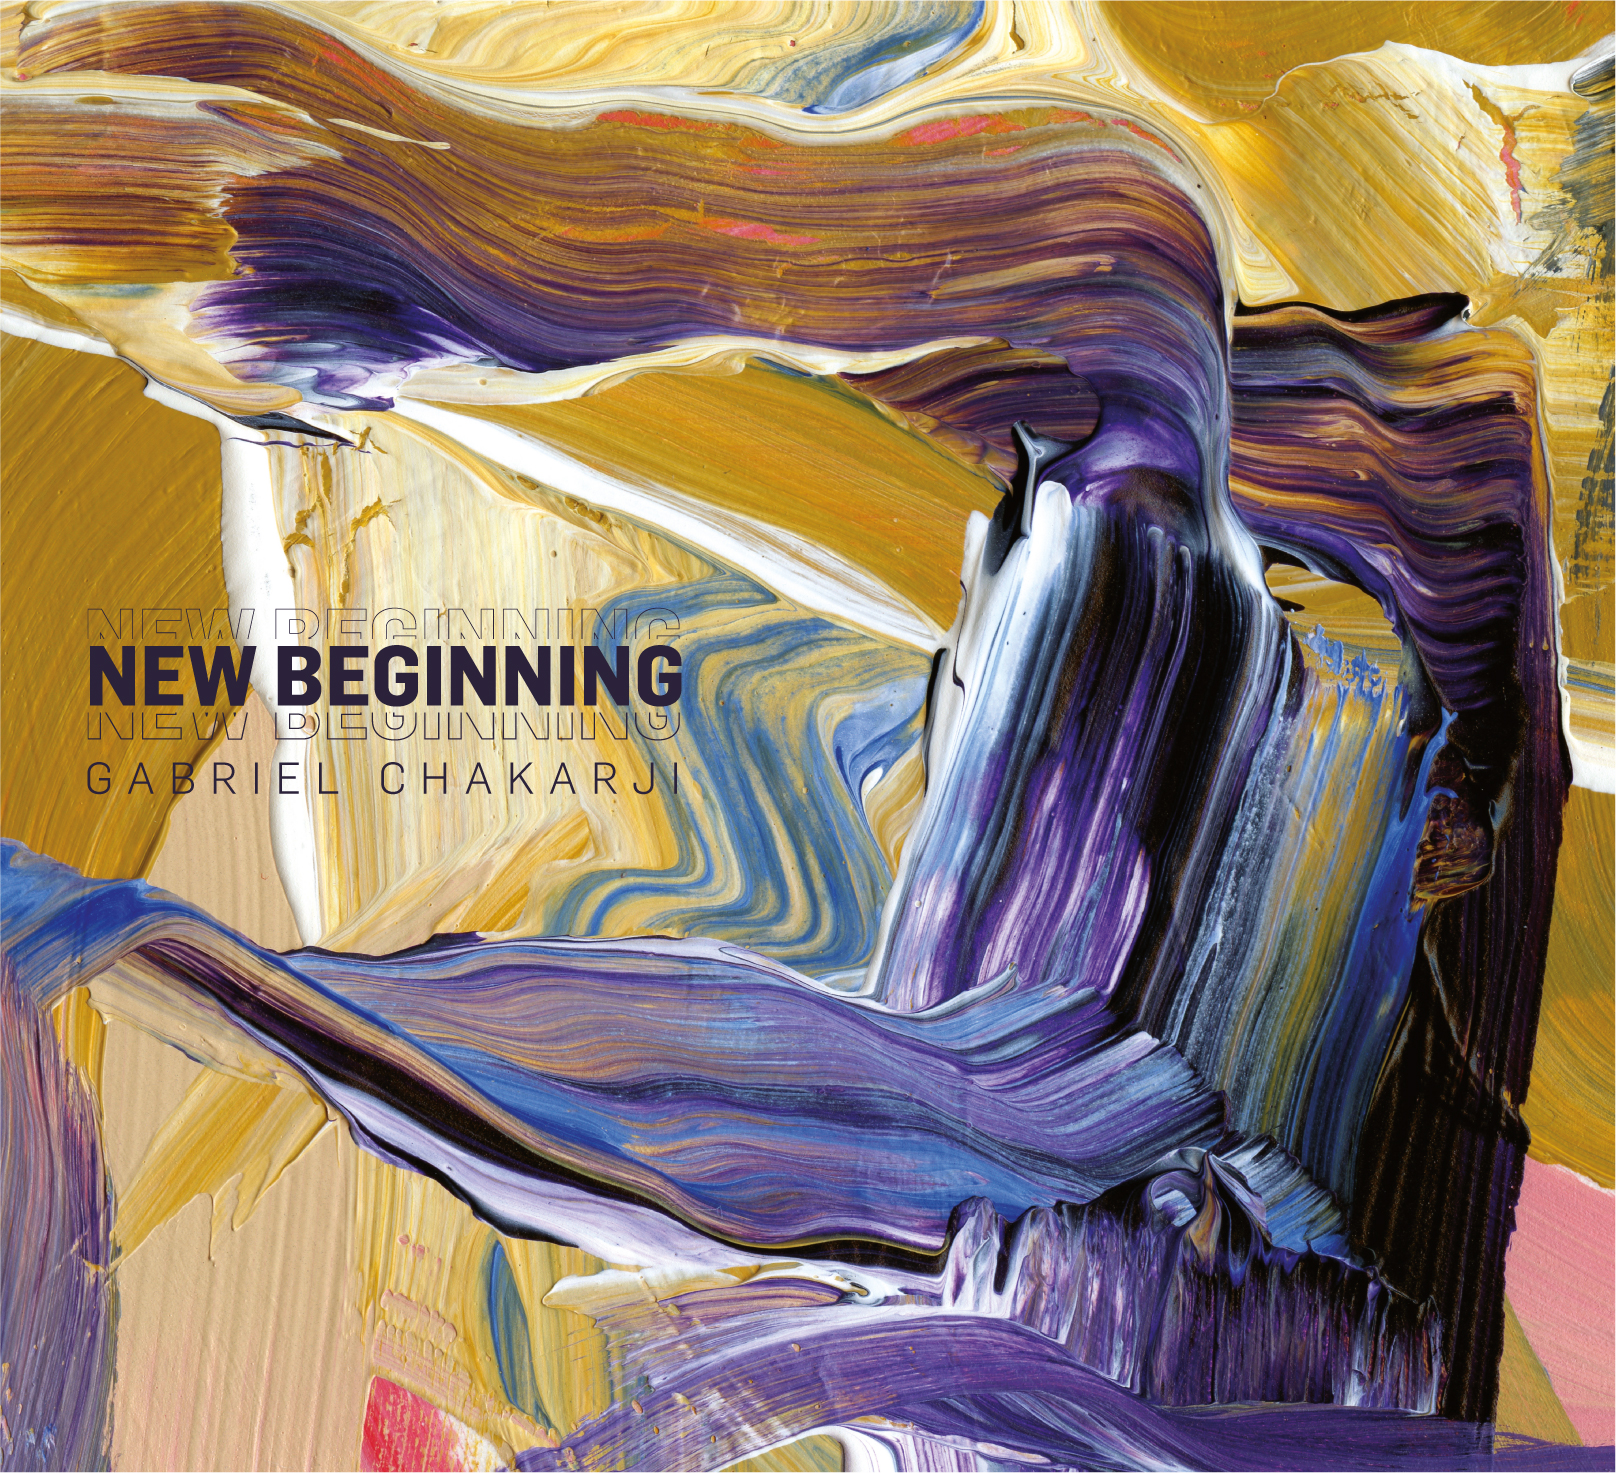 REVIEW: Gabriel Chakarjis's New Beginning – The Jazz Owl